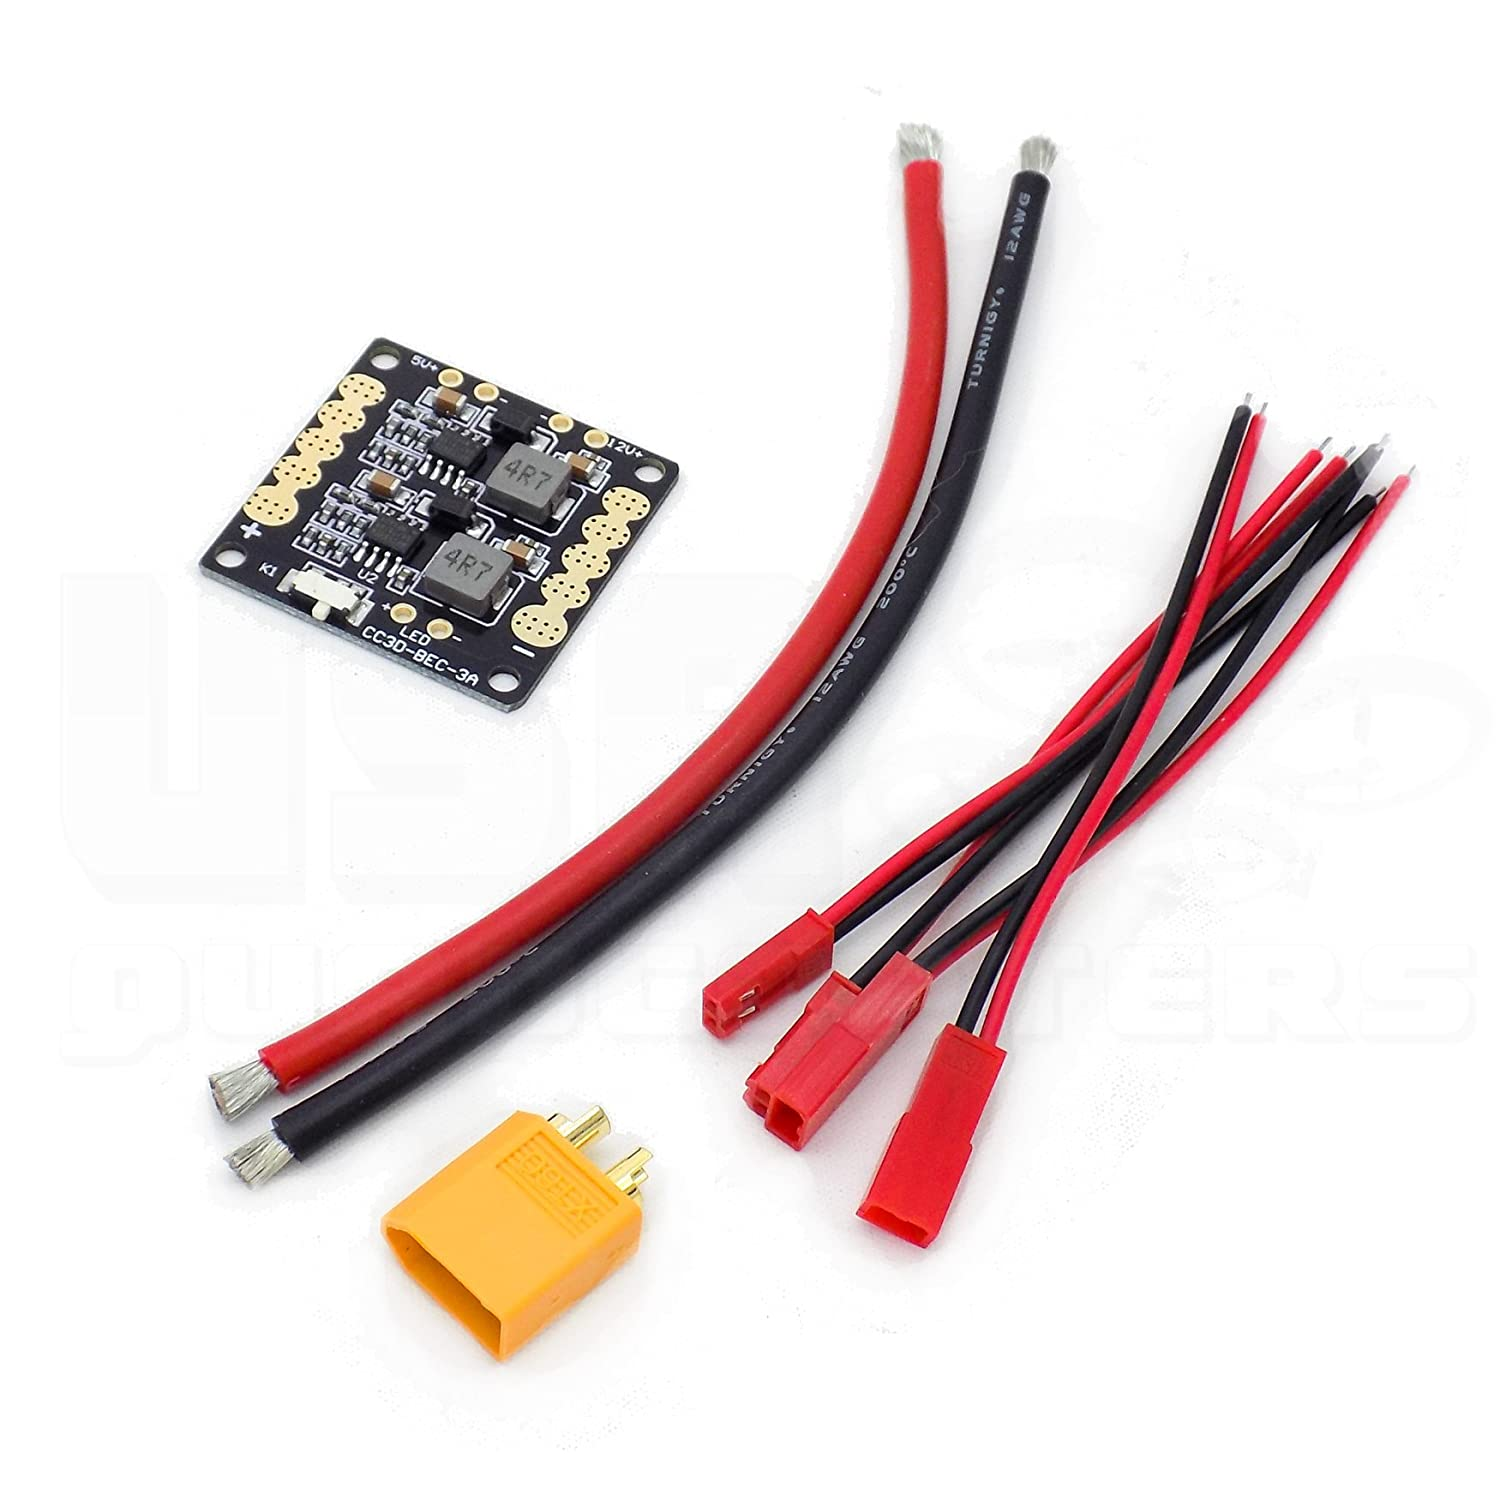 Cc3d Wiring Diagrams With Orange Rx Racing Drone Quadcopter Kit Naze Awg Wire Connector Toys Games 1500x1500